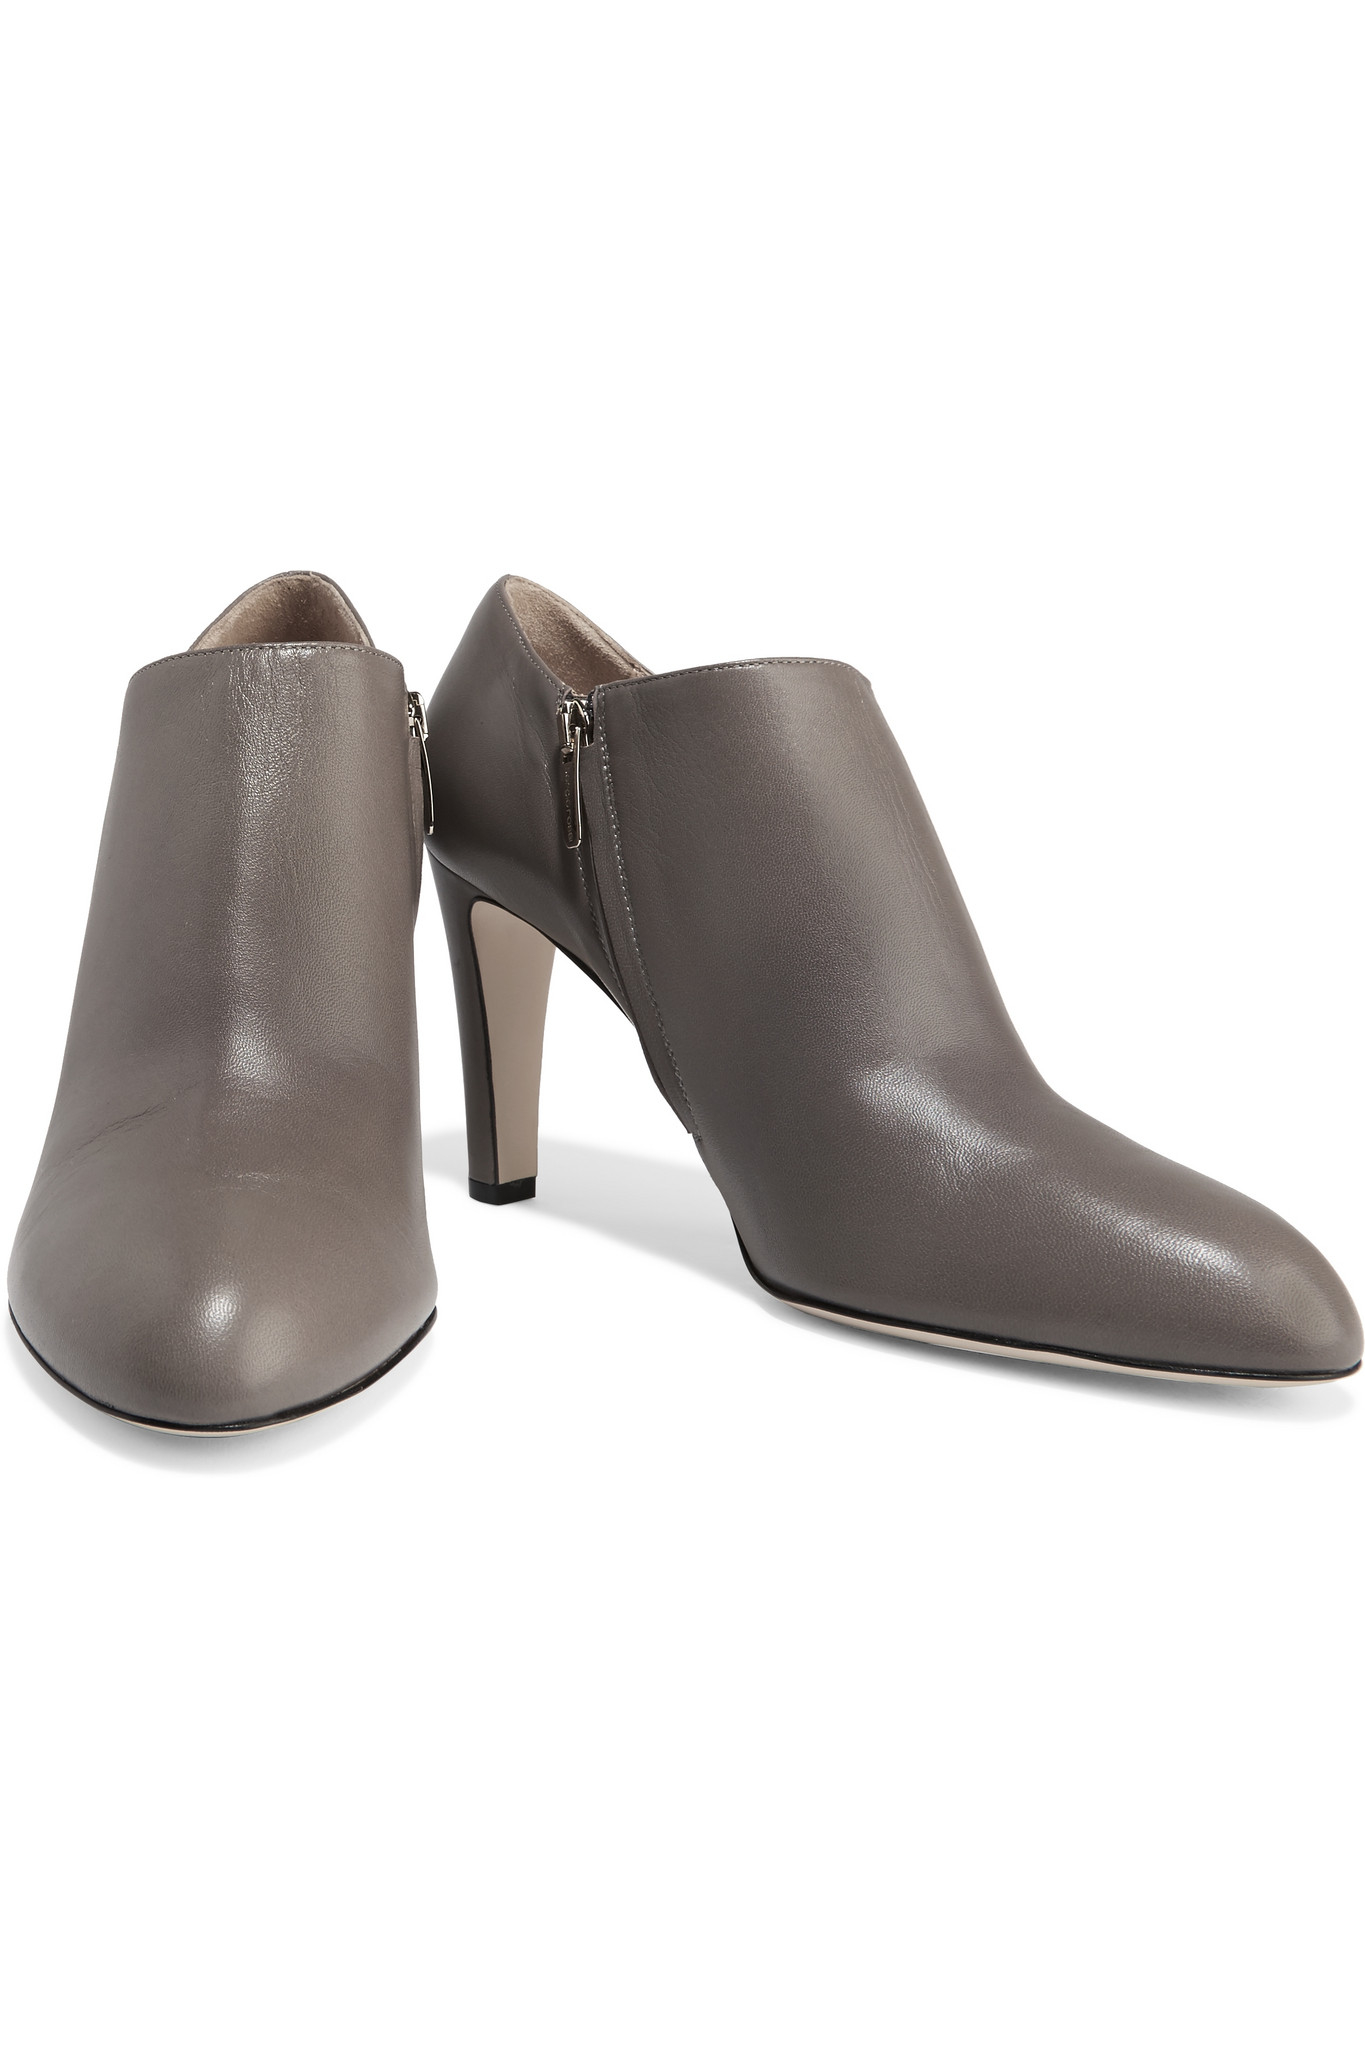 Sergio Rossi Leather Ankle Boots in Grey